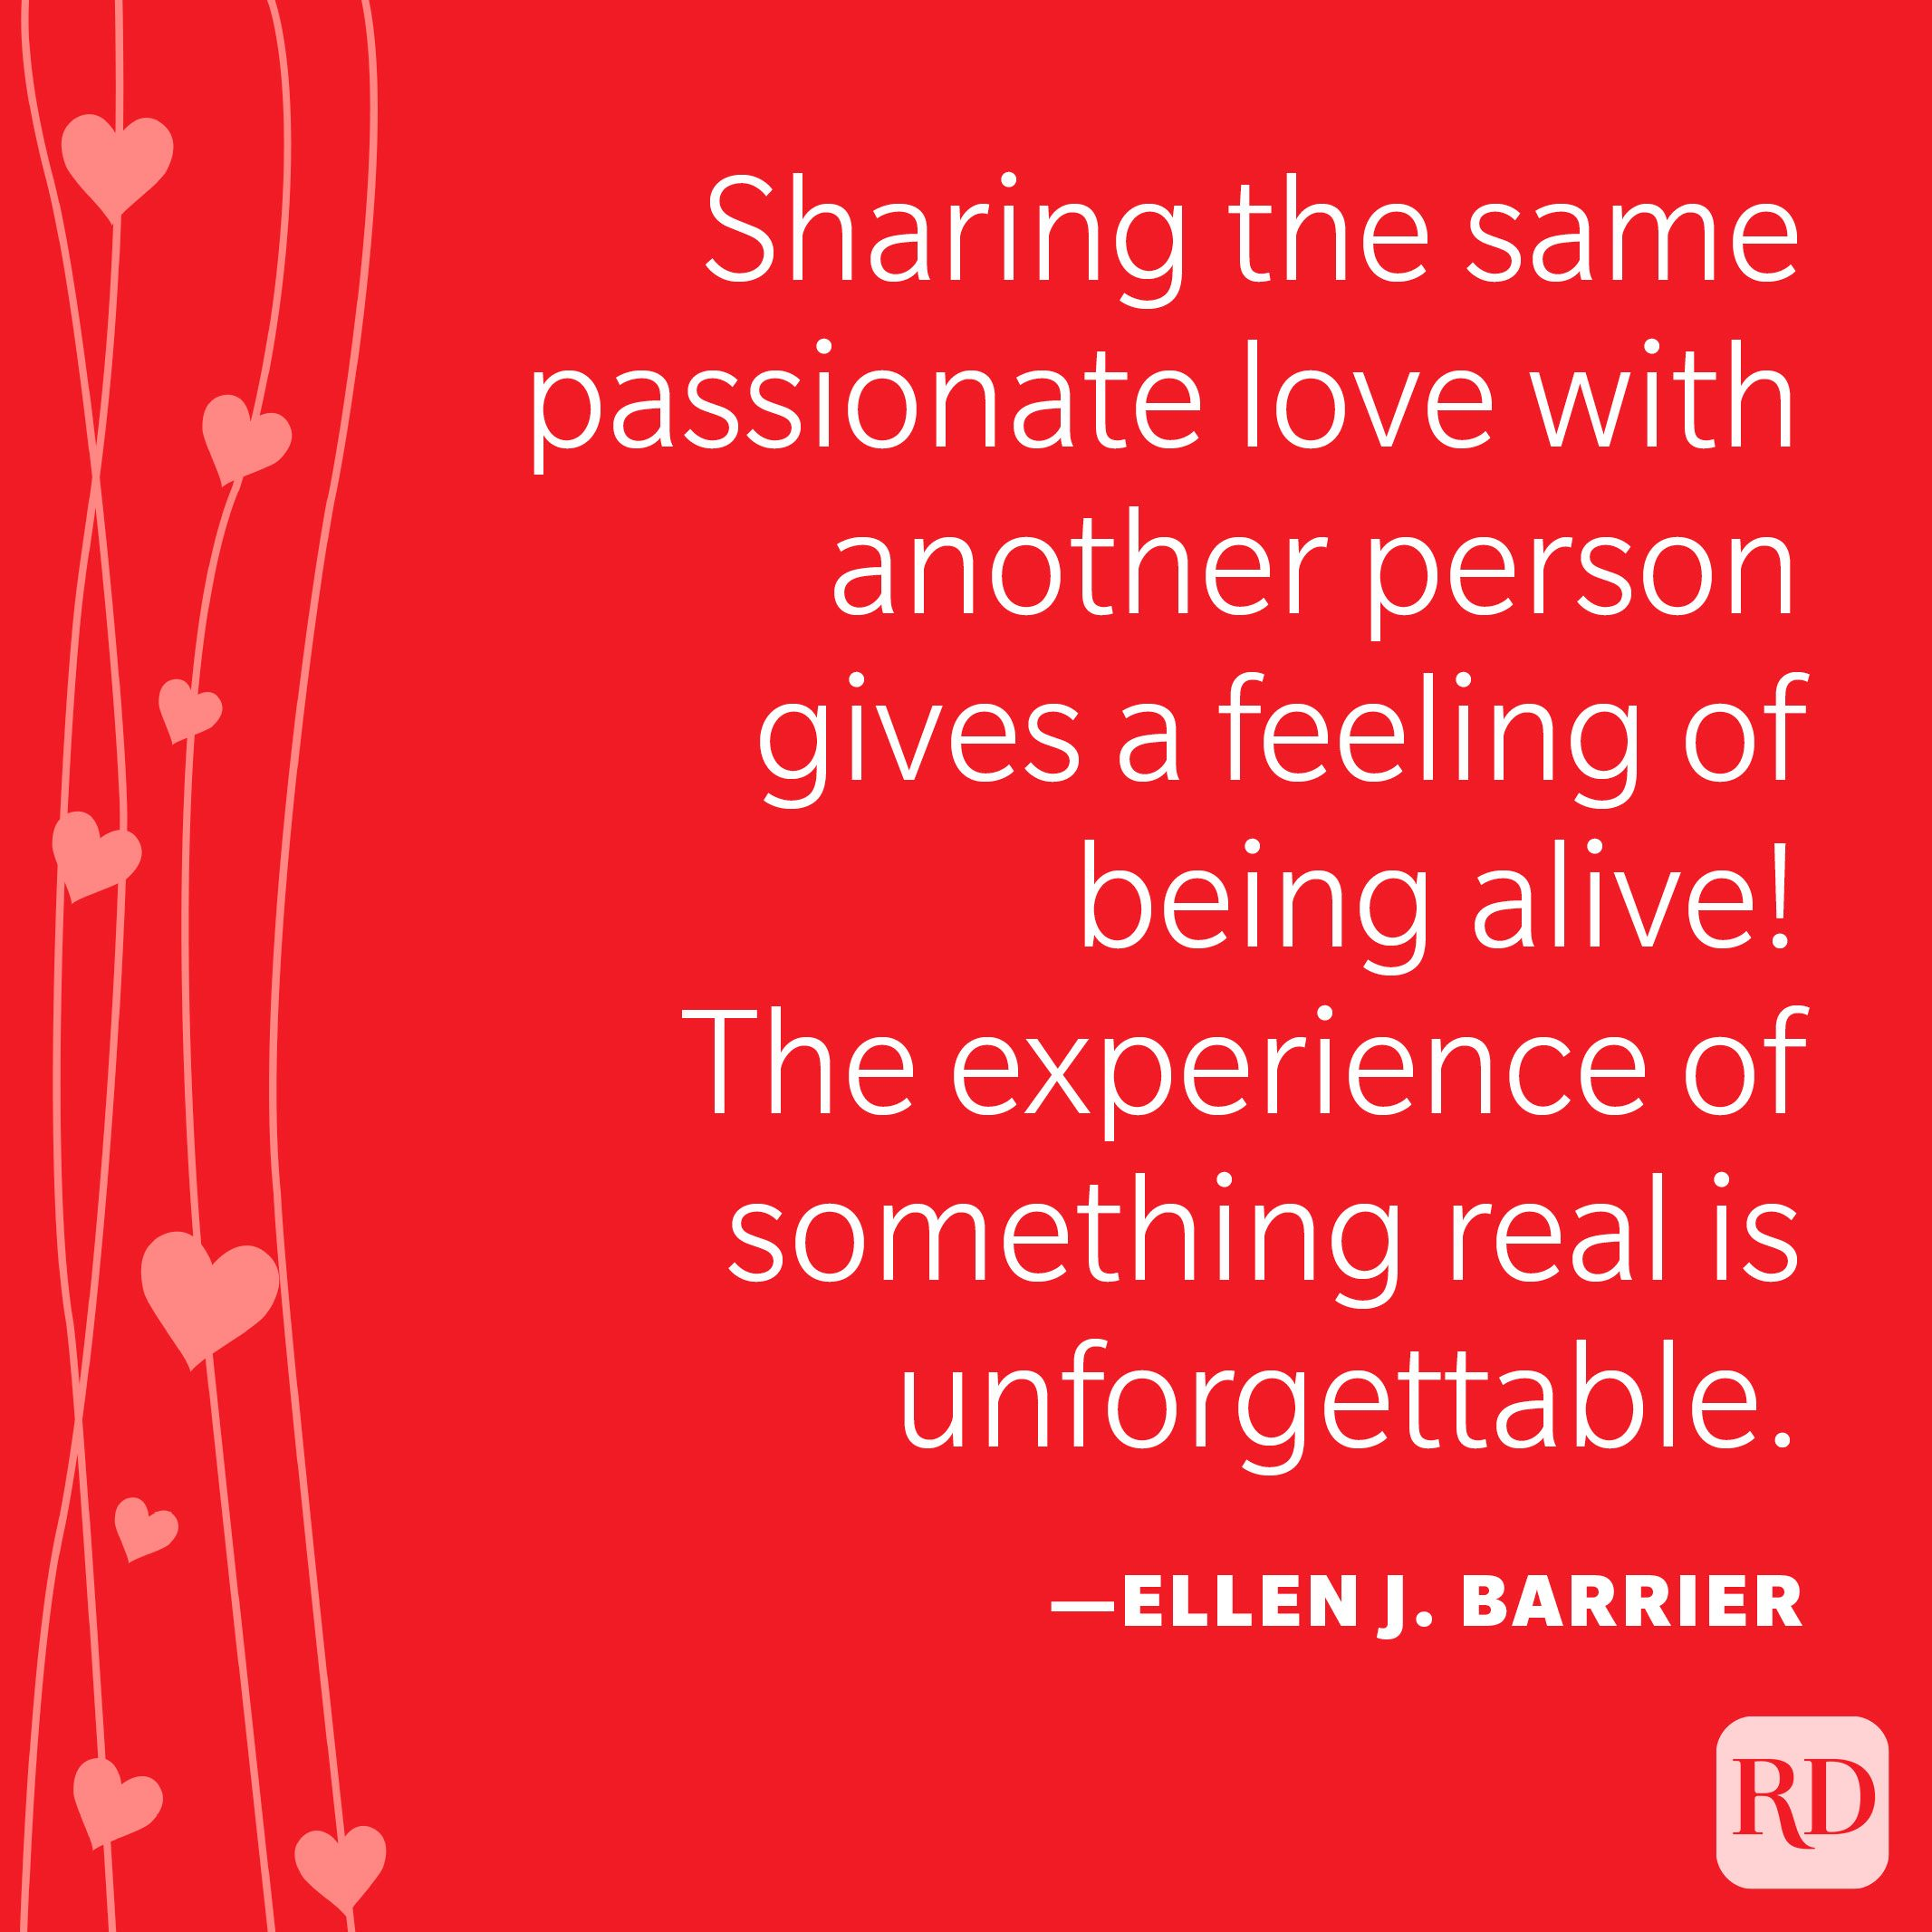 """""""Sharing the same passionate love with another person gives a feeling of being alive! The experience of something real is unforgettable."""" —Ellen J. Barrier"""